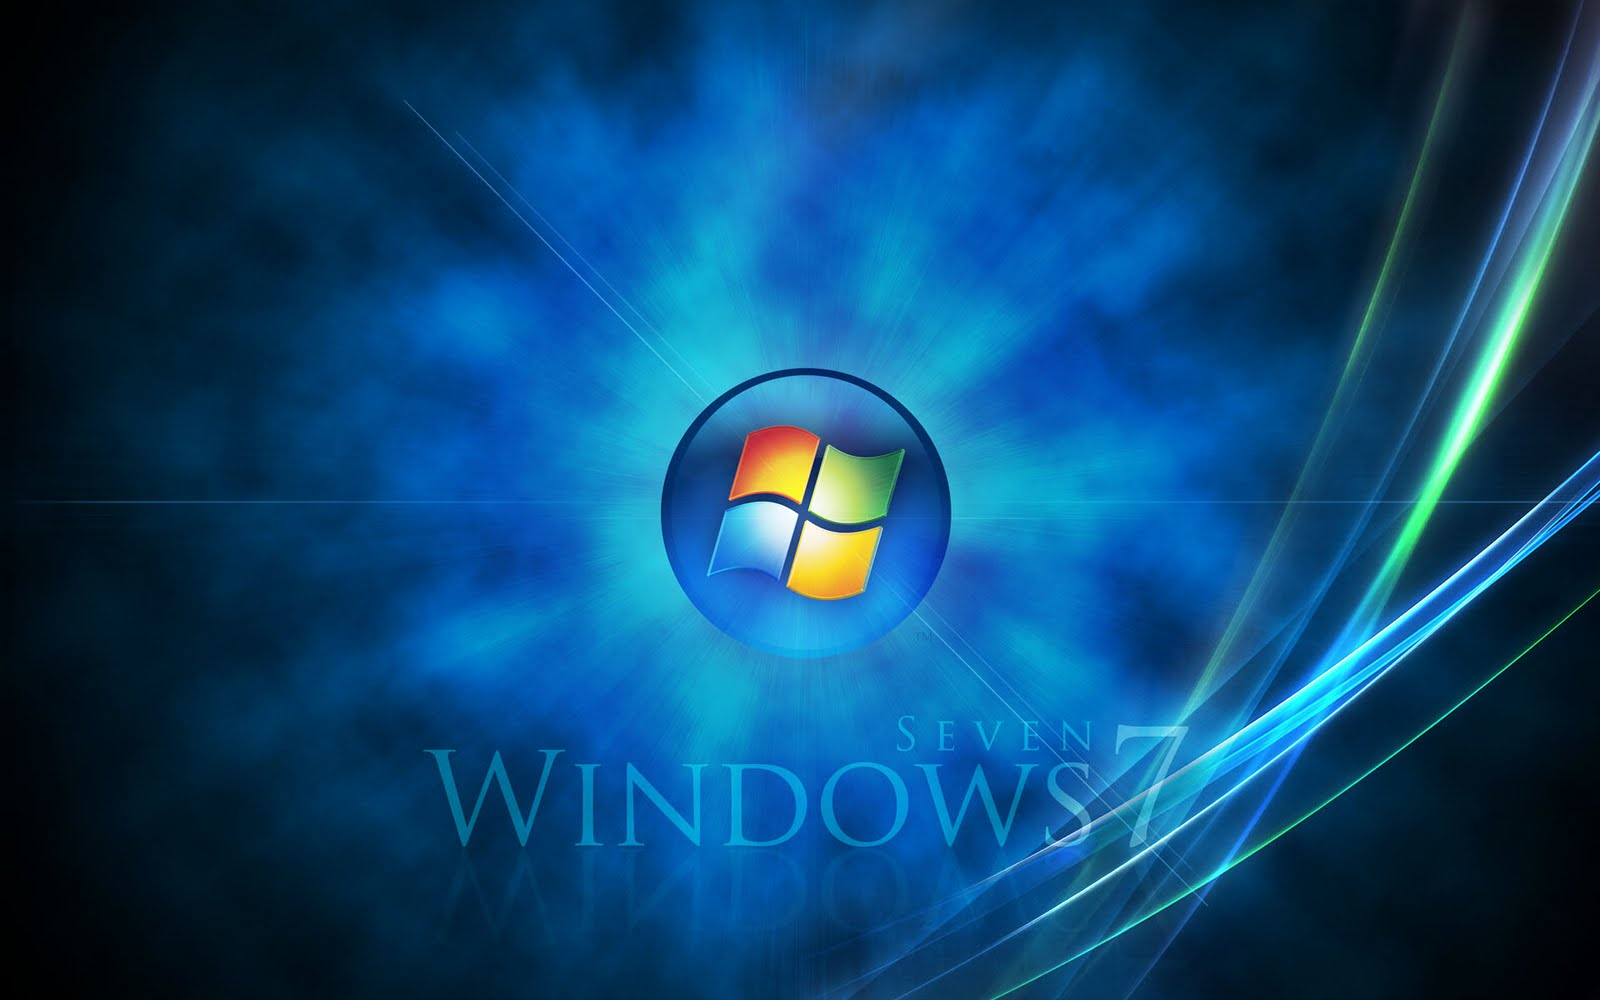 Comments Window 7 Hd Wallpaper Wallpapers Of Windows 1600x1000